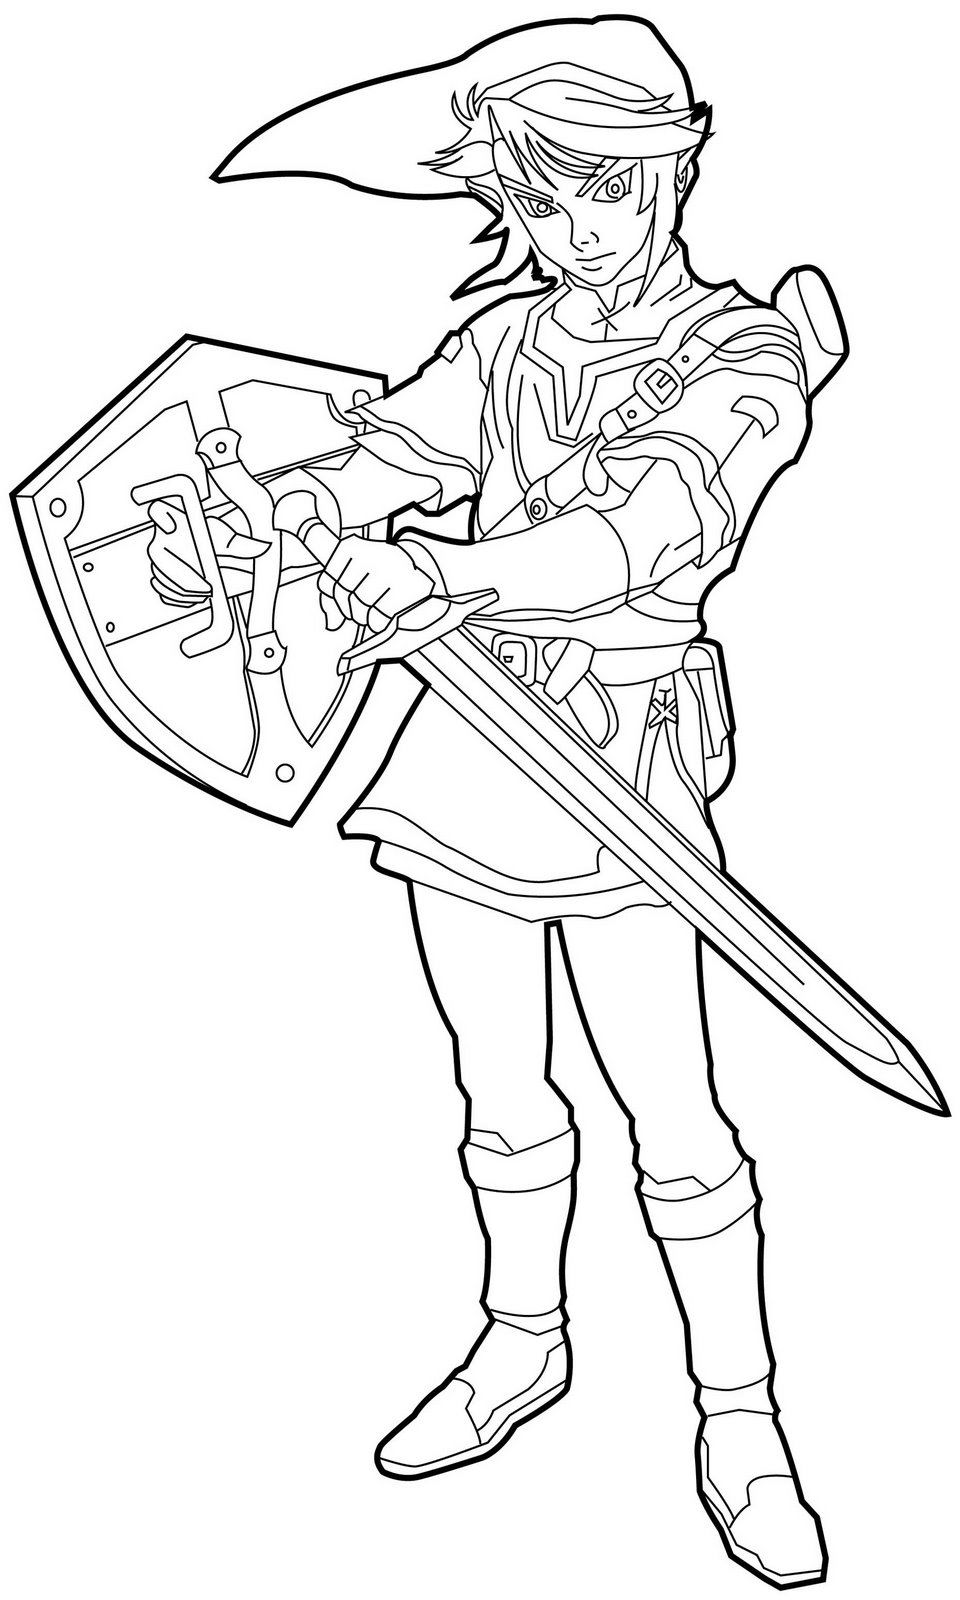 Legend Of Zelda Coloring Pages - NEO Coloring